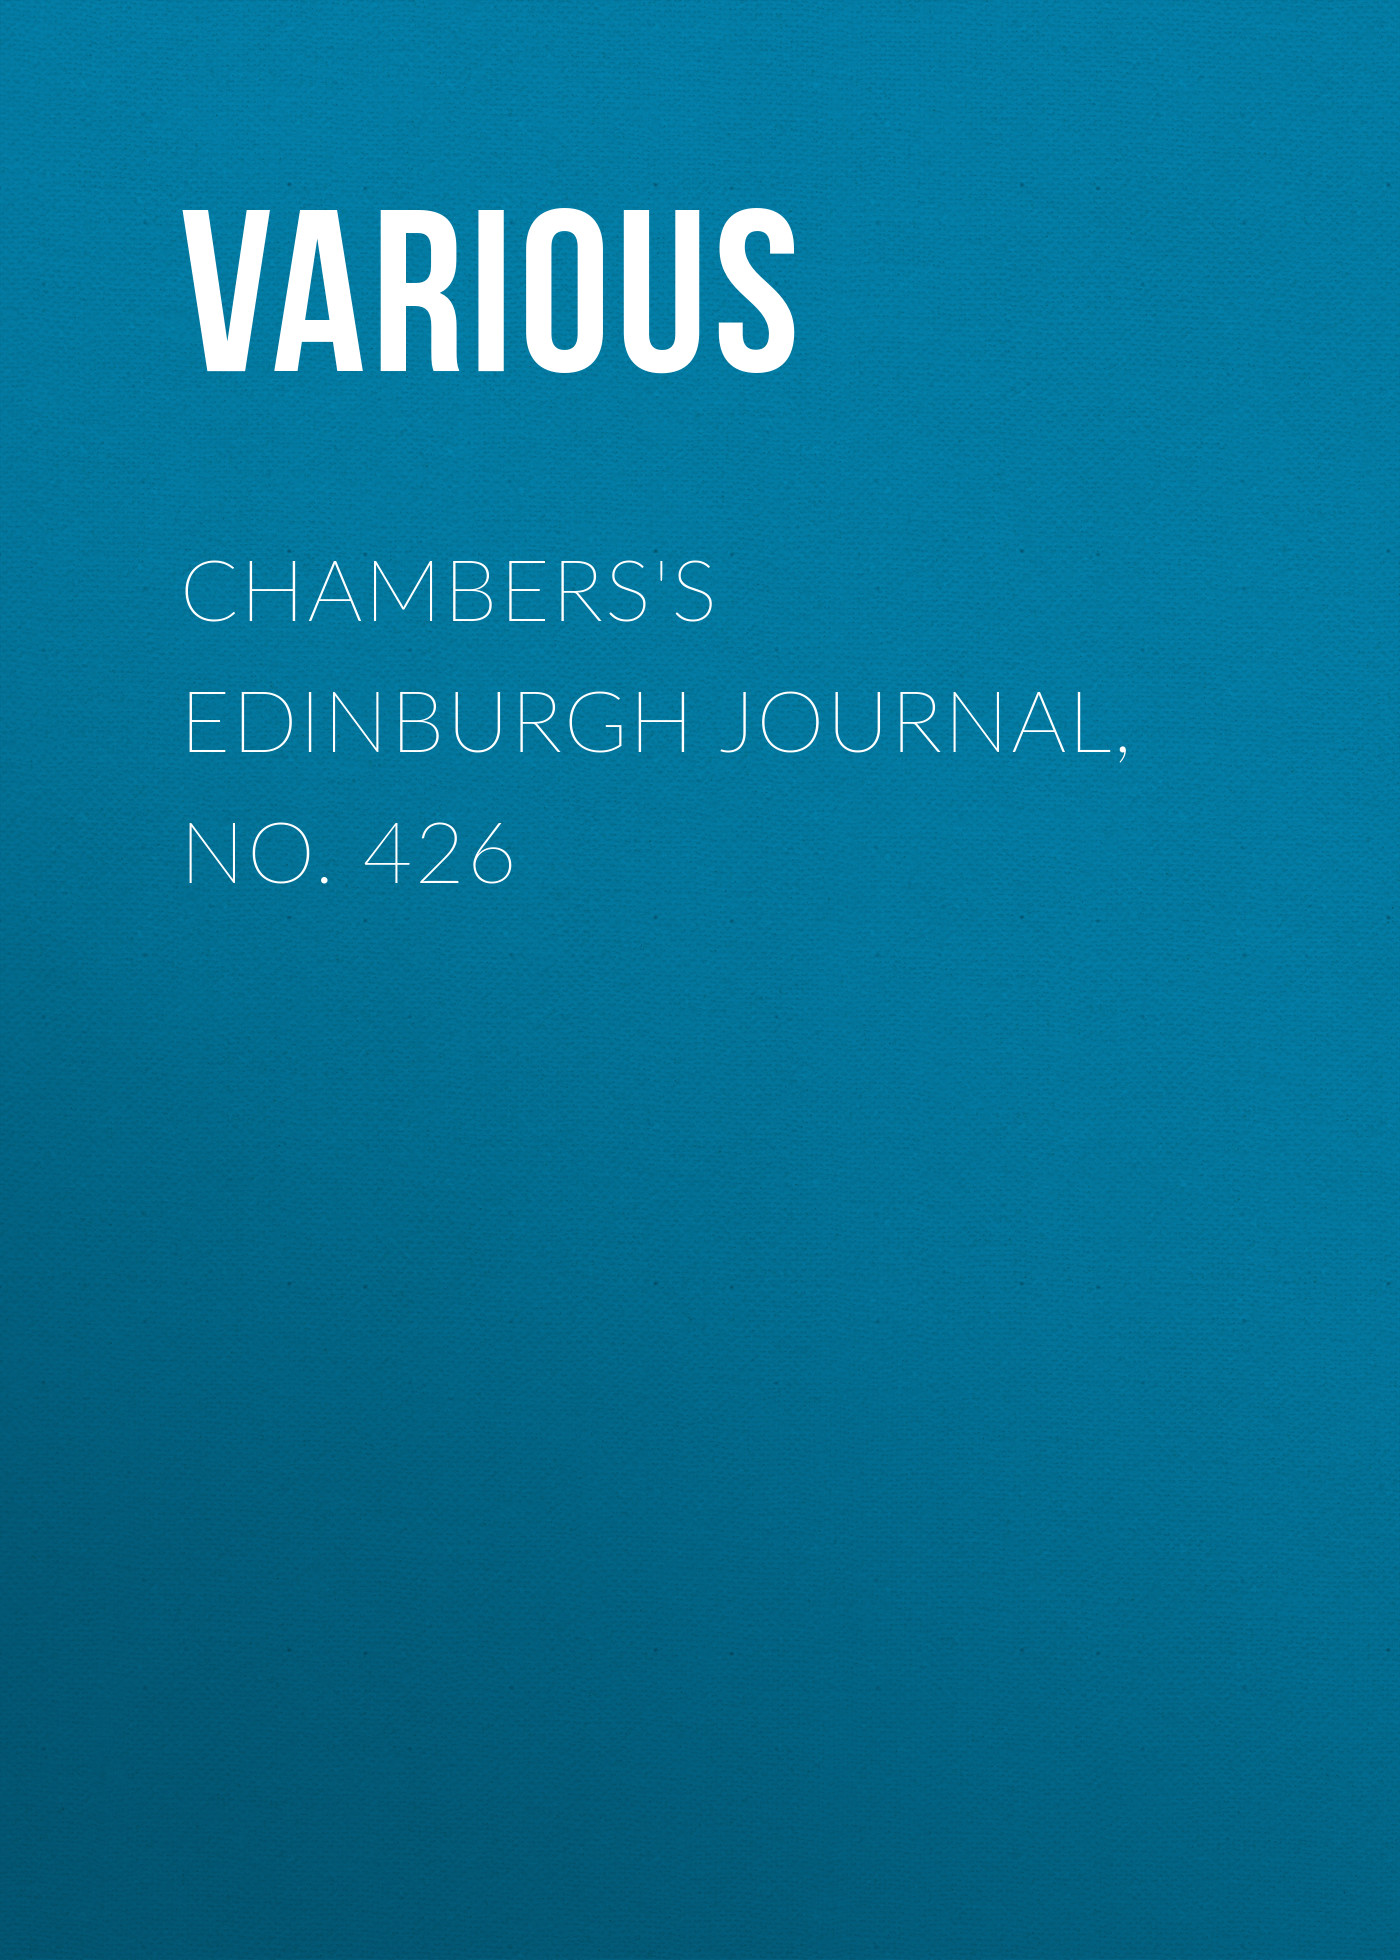 Various Chambers's Edinburgh Journal, No. 426 dara o briain edinburgh